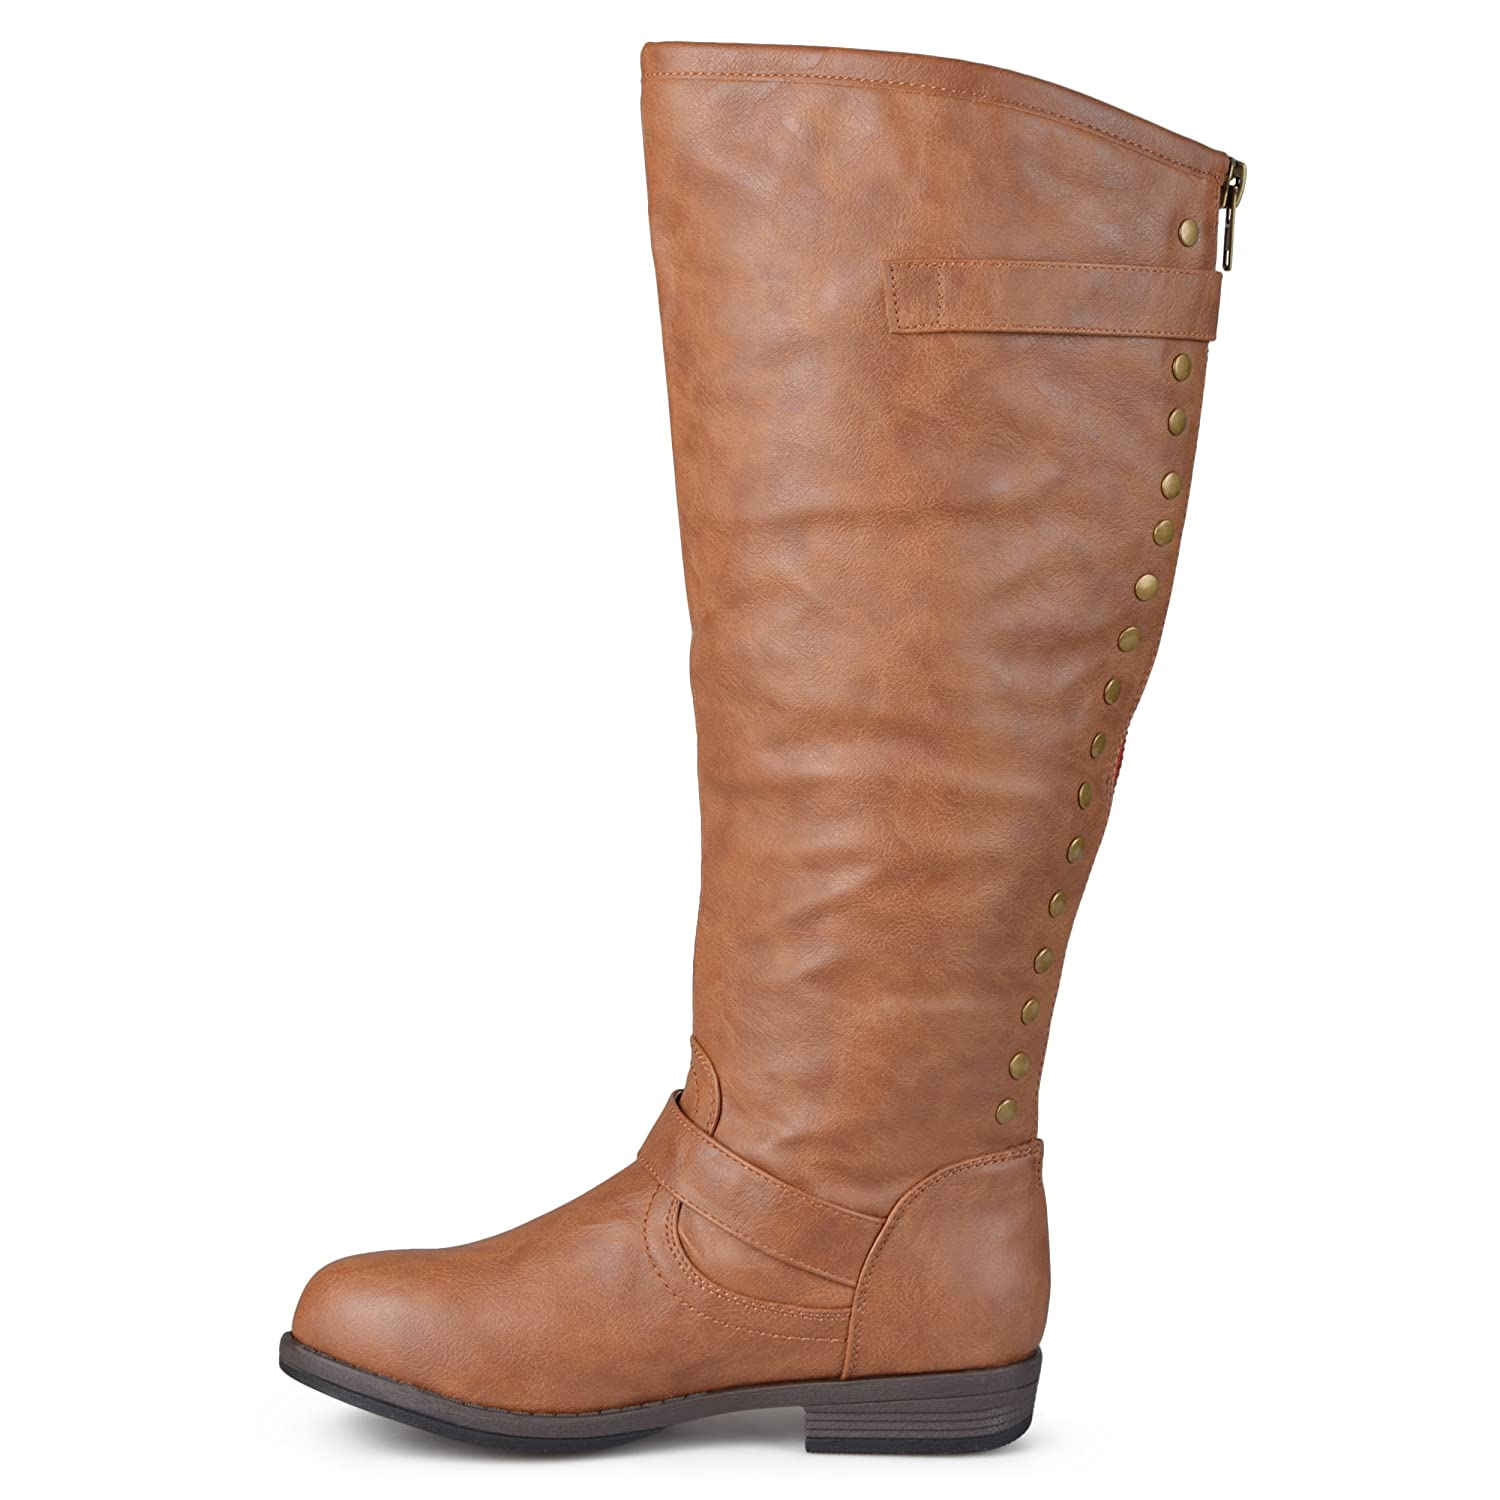 Journee Collection Womens Regular Sized, Wide-Calf and Extra Wide-Calf Studded Knee-High Riding Boot B01139QIAM 11 B(M) US|Chestnut Wide Calf